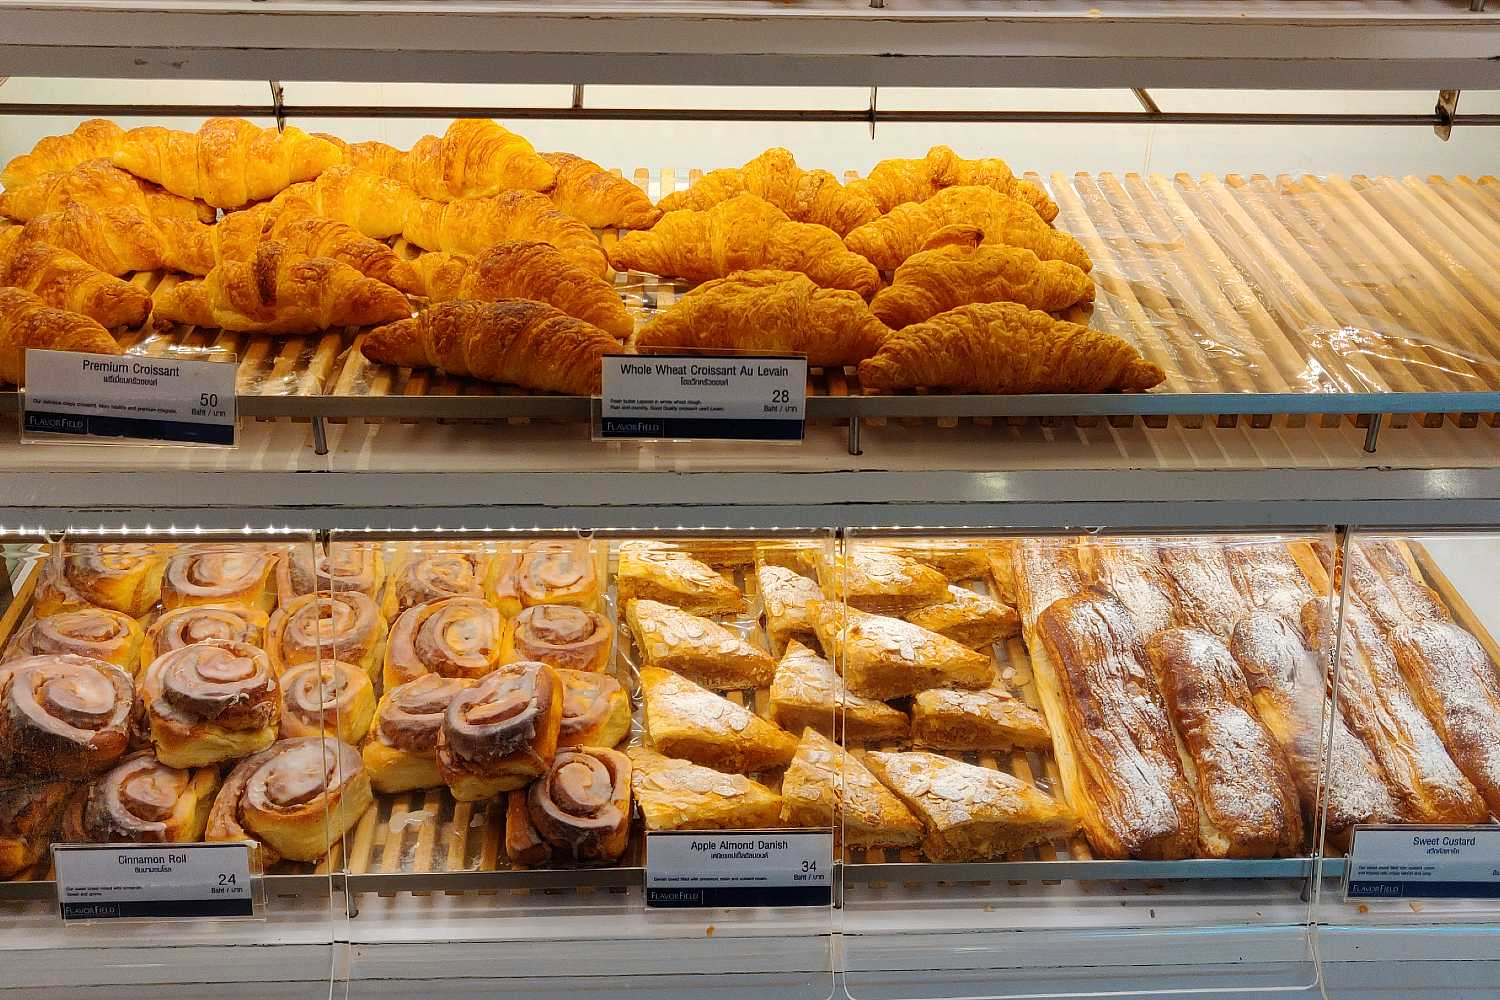 Different kinds of breads at BreadTalk in Siam Paragon, Bangkok (Thailand)